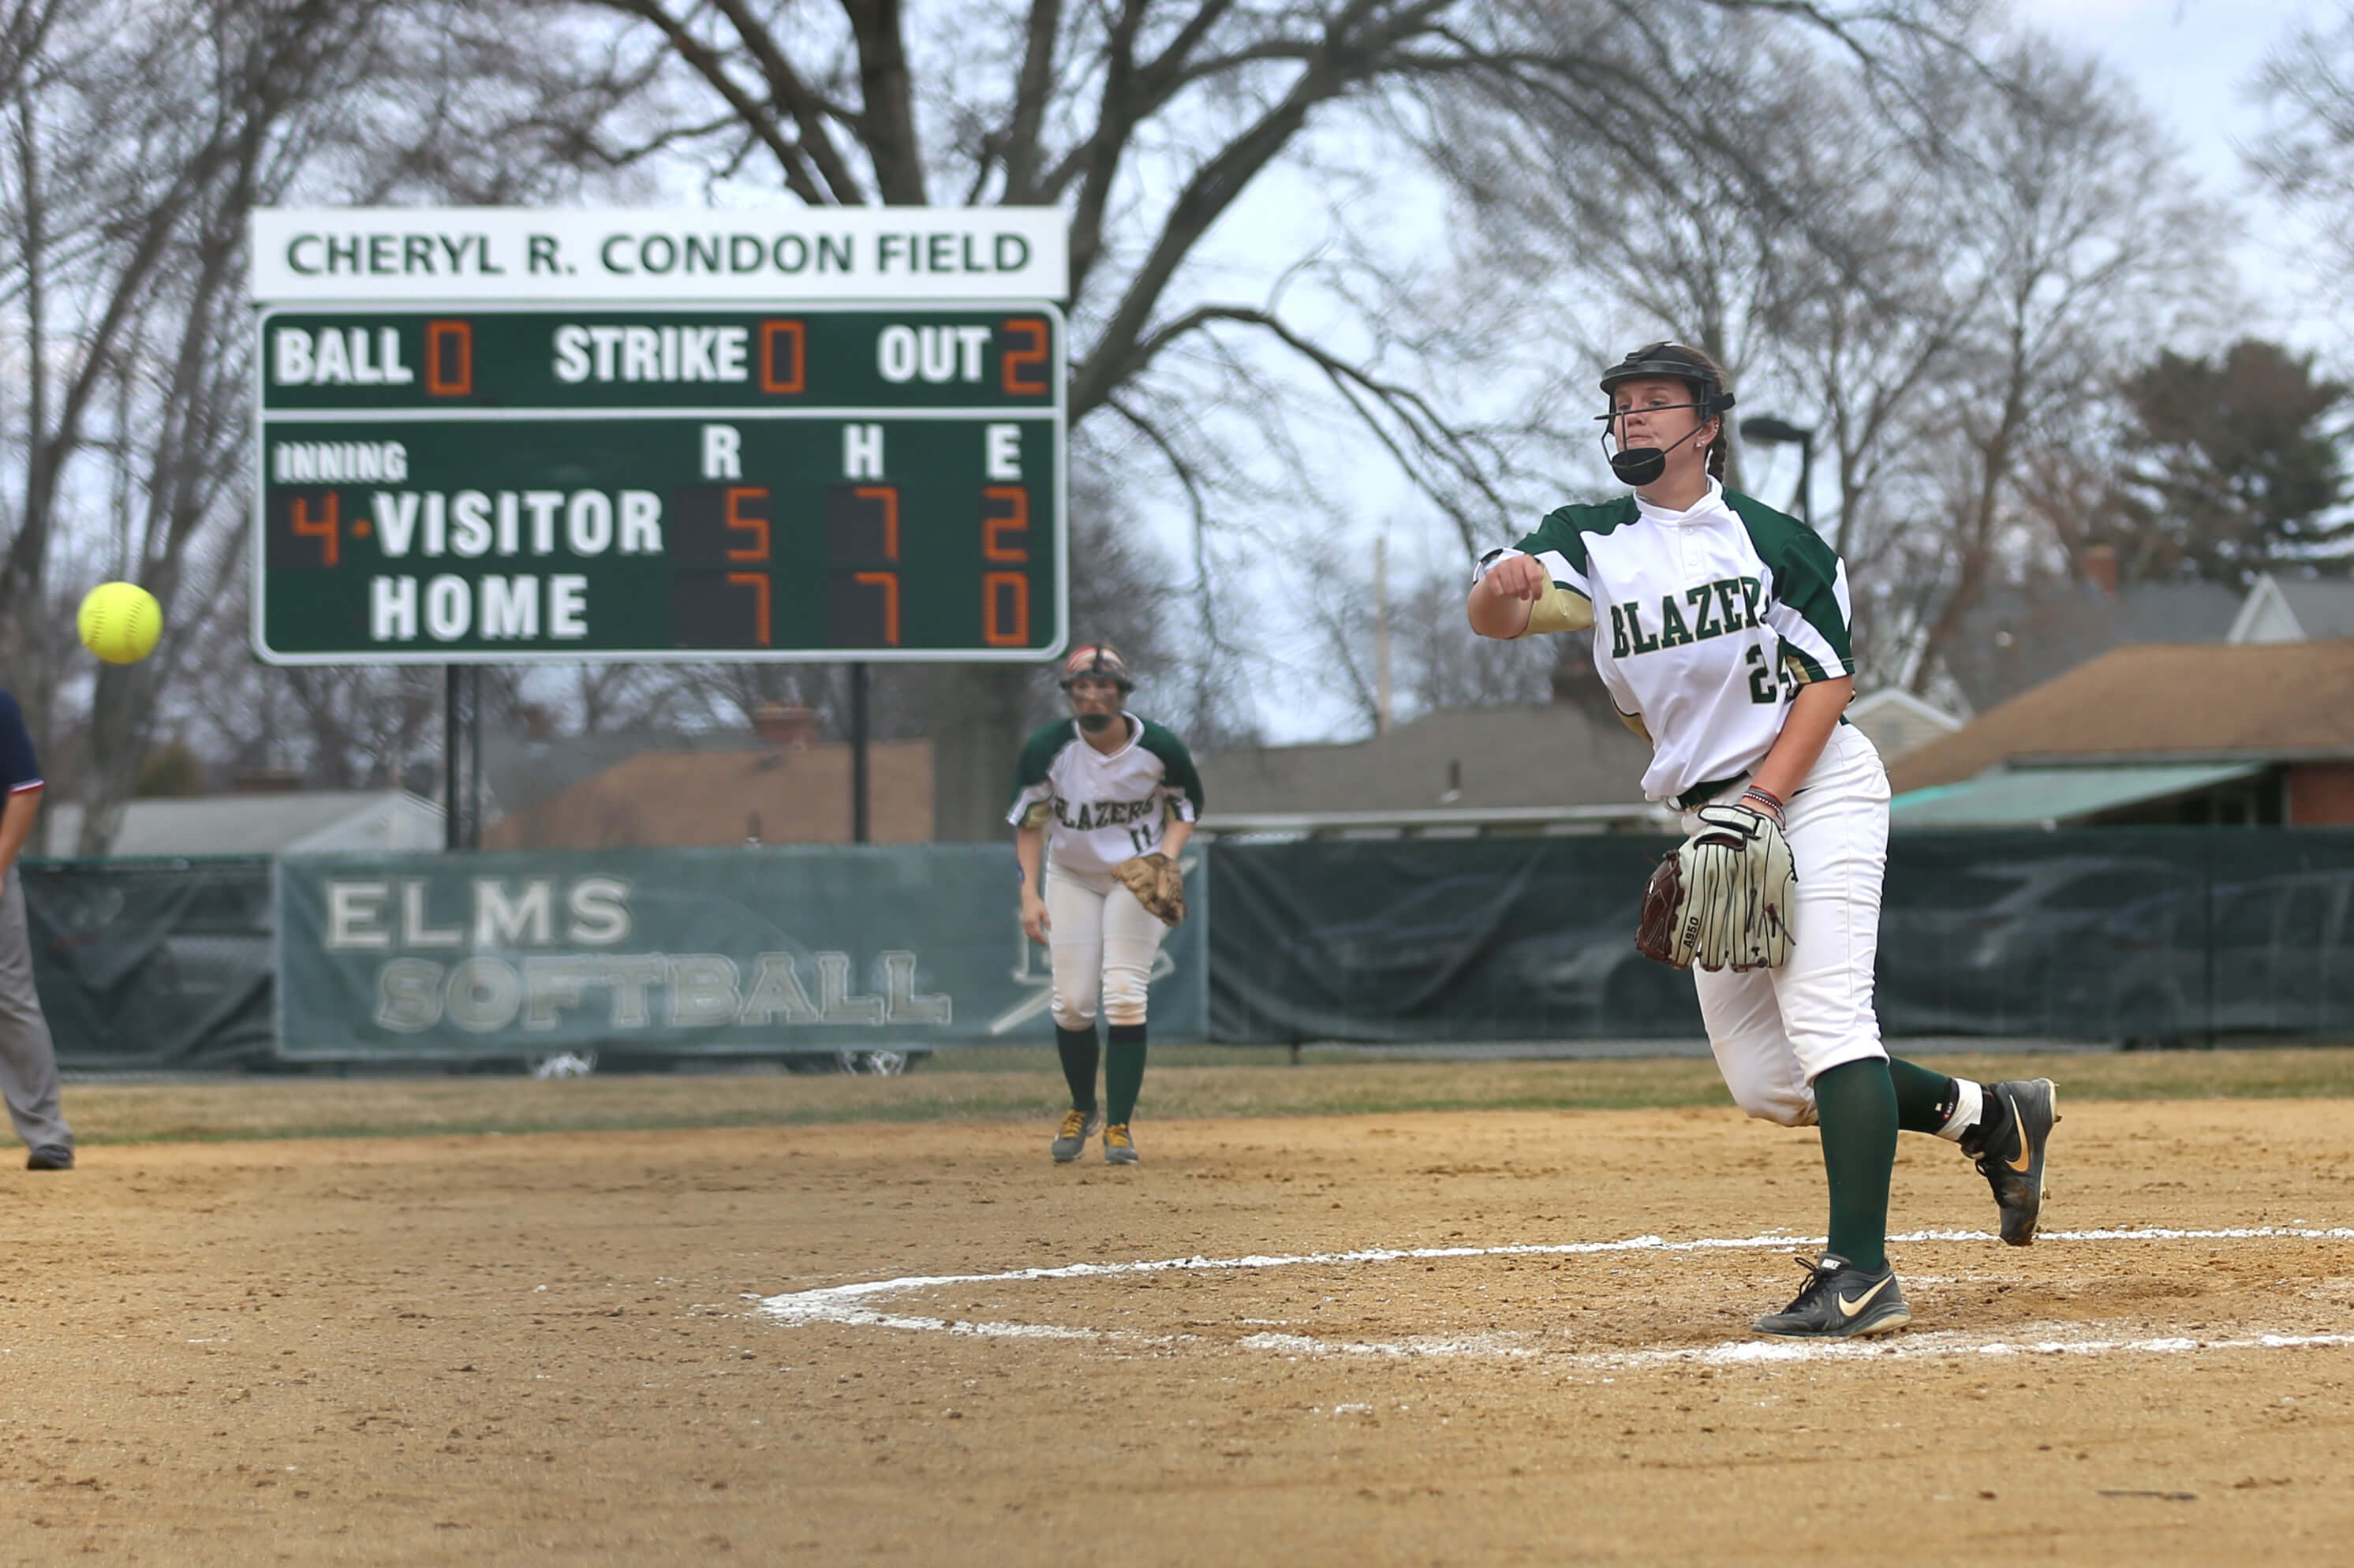 Photo of softball player on Condon Field